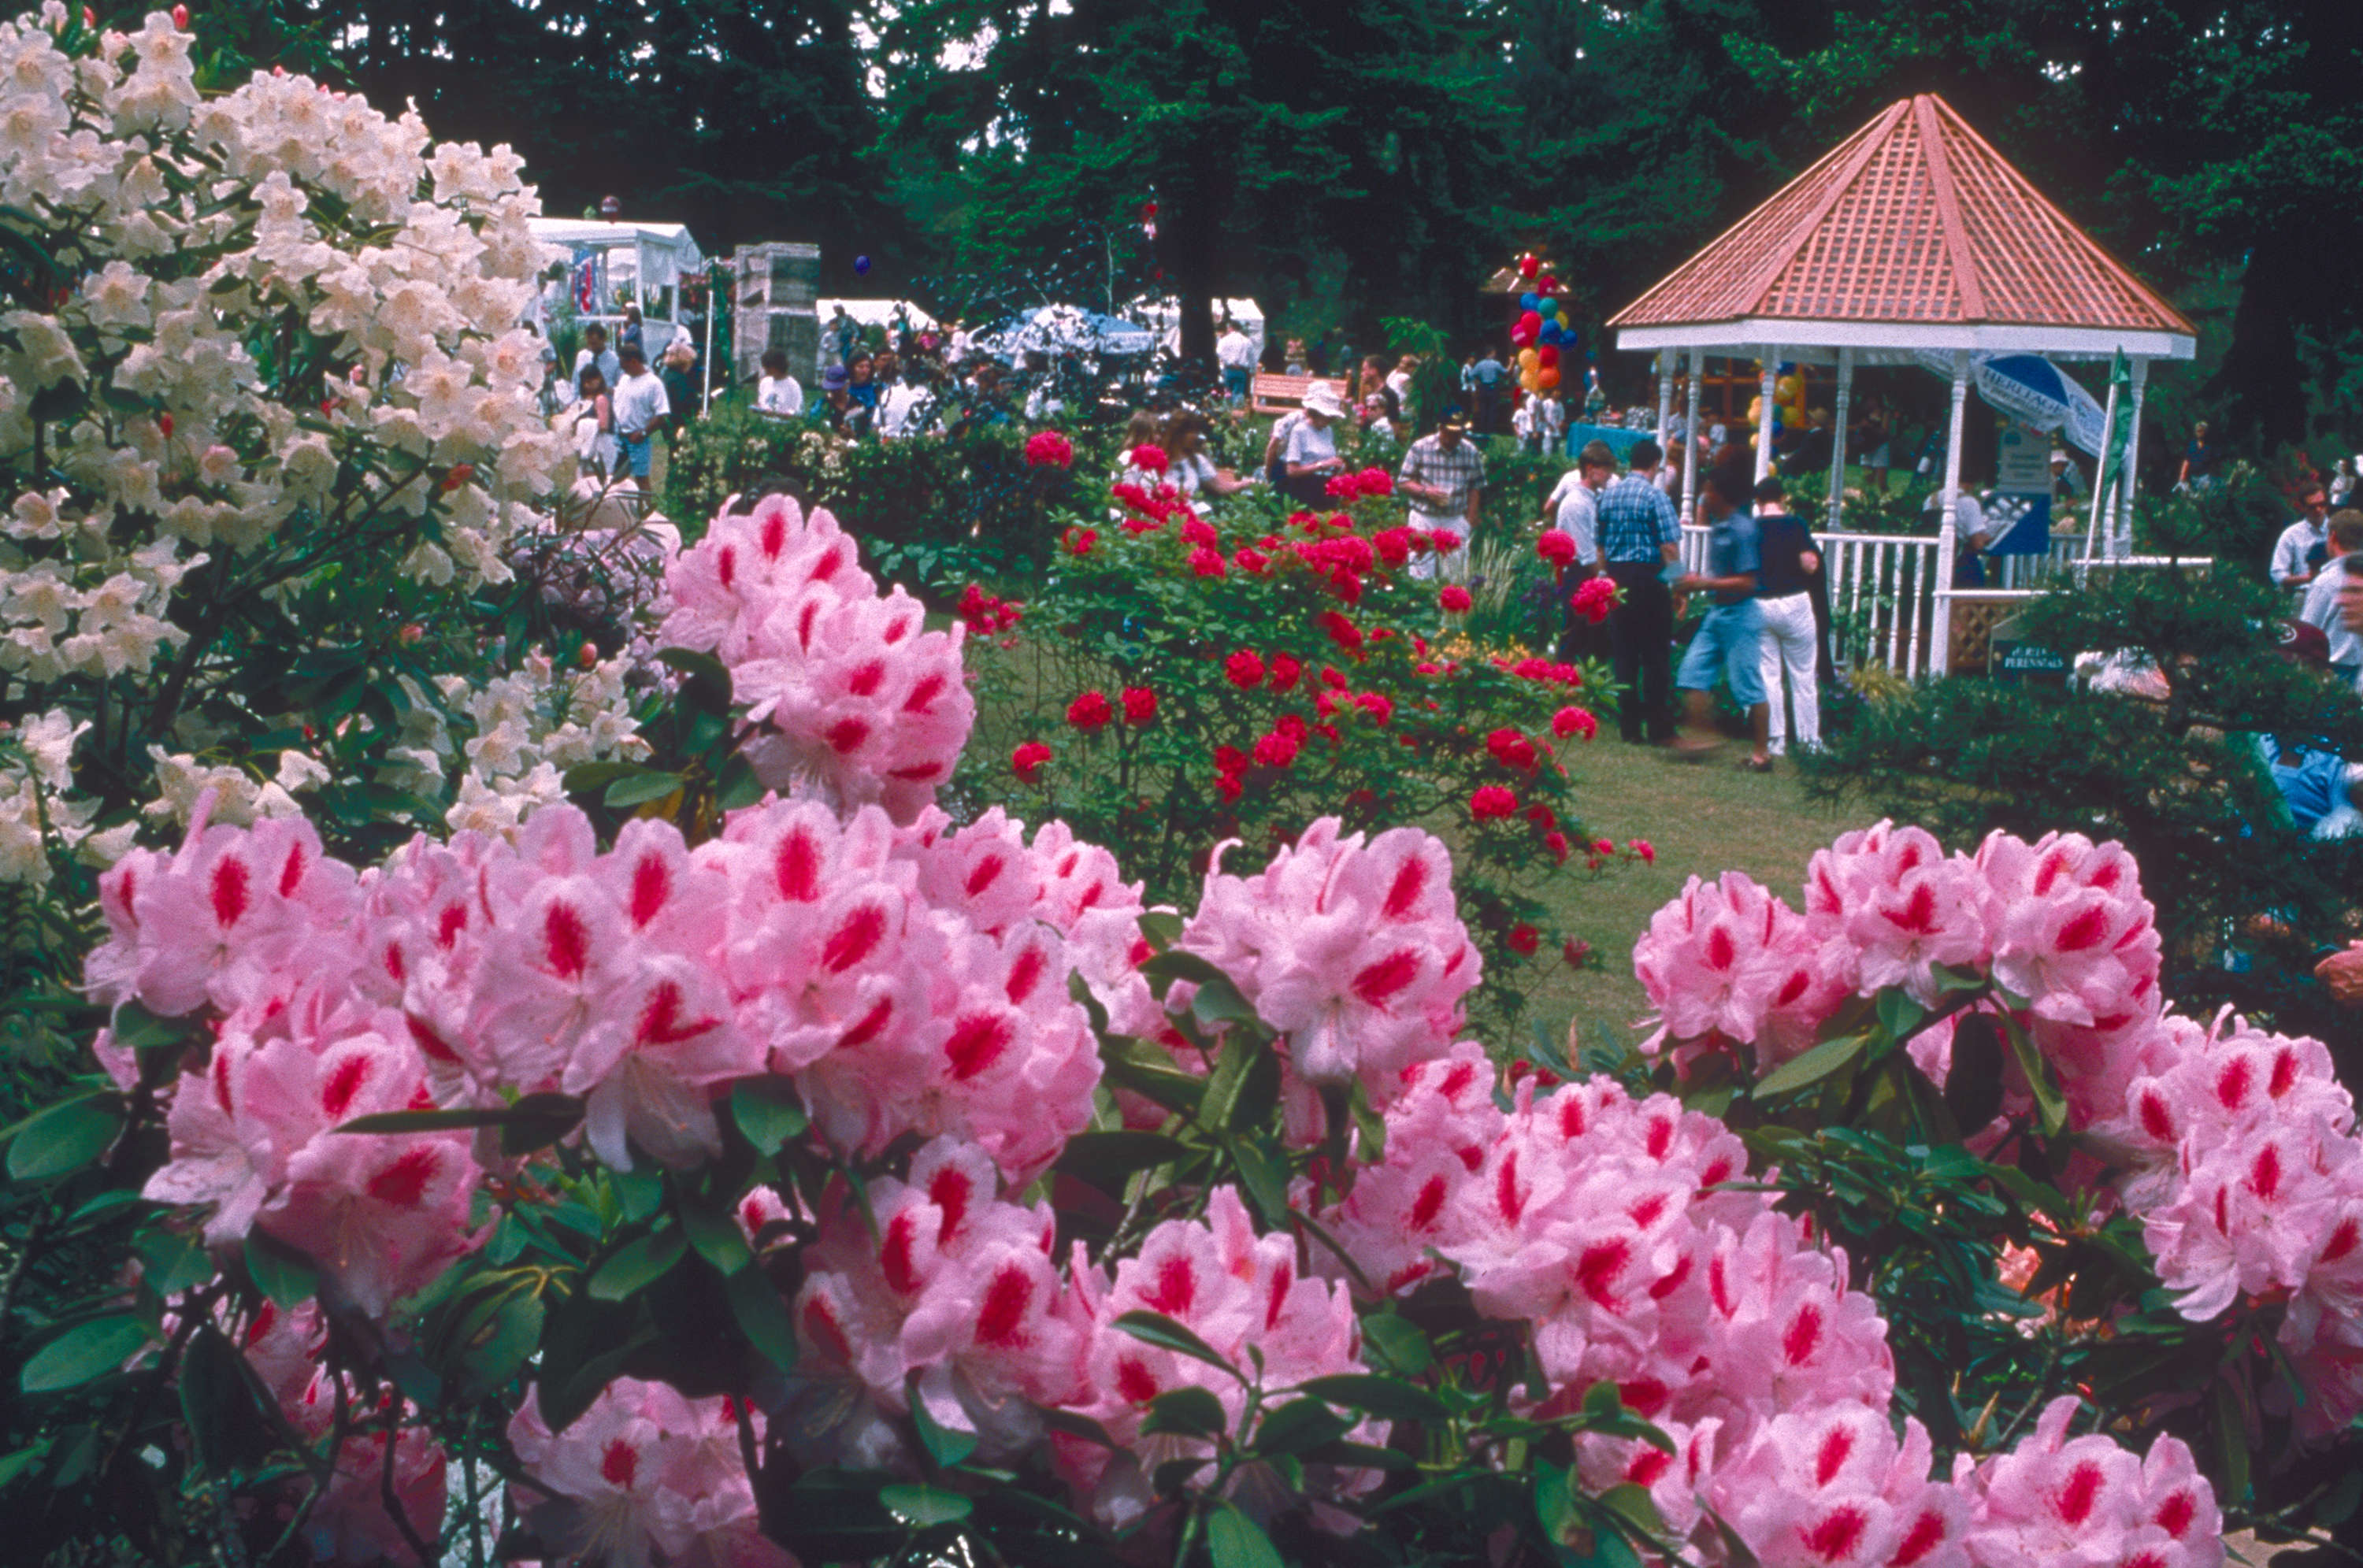 special events : garden show - city of vancouver archives